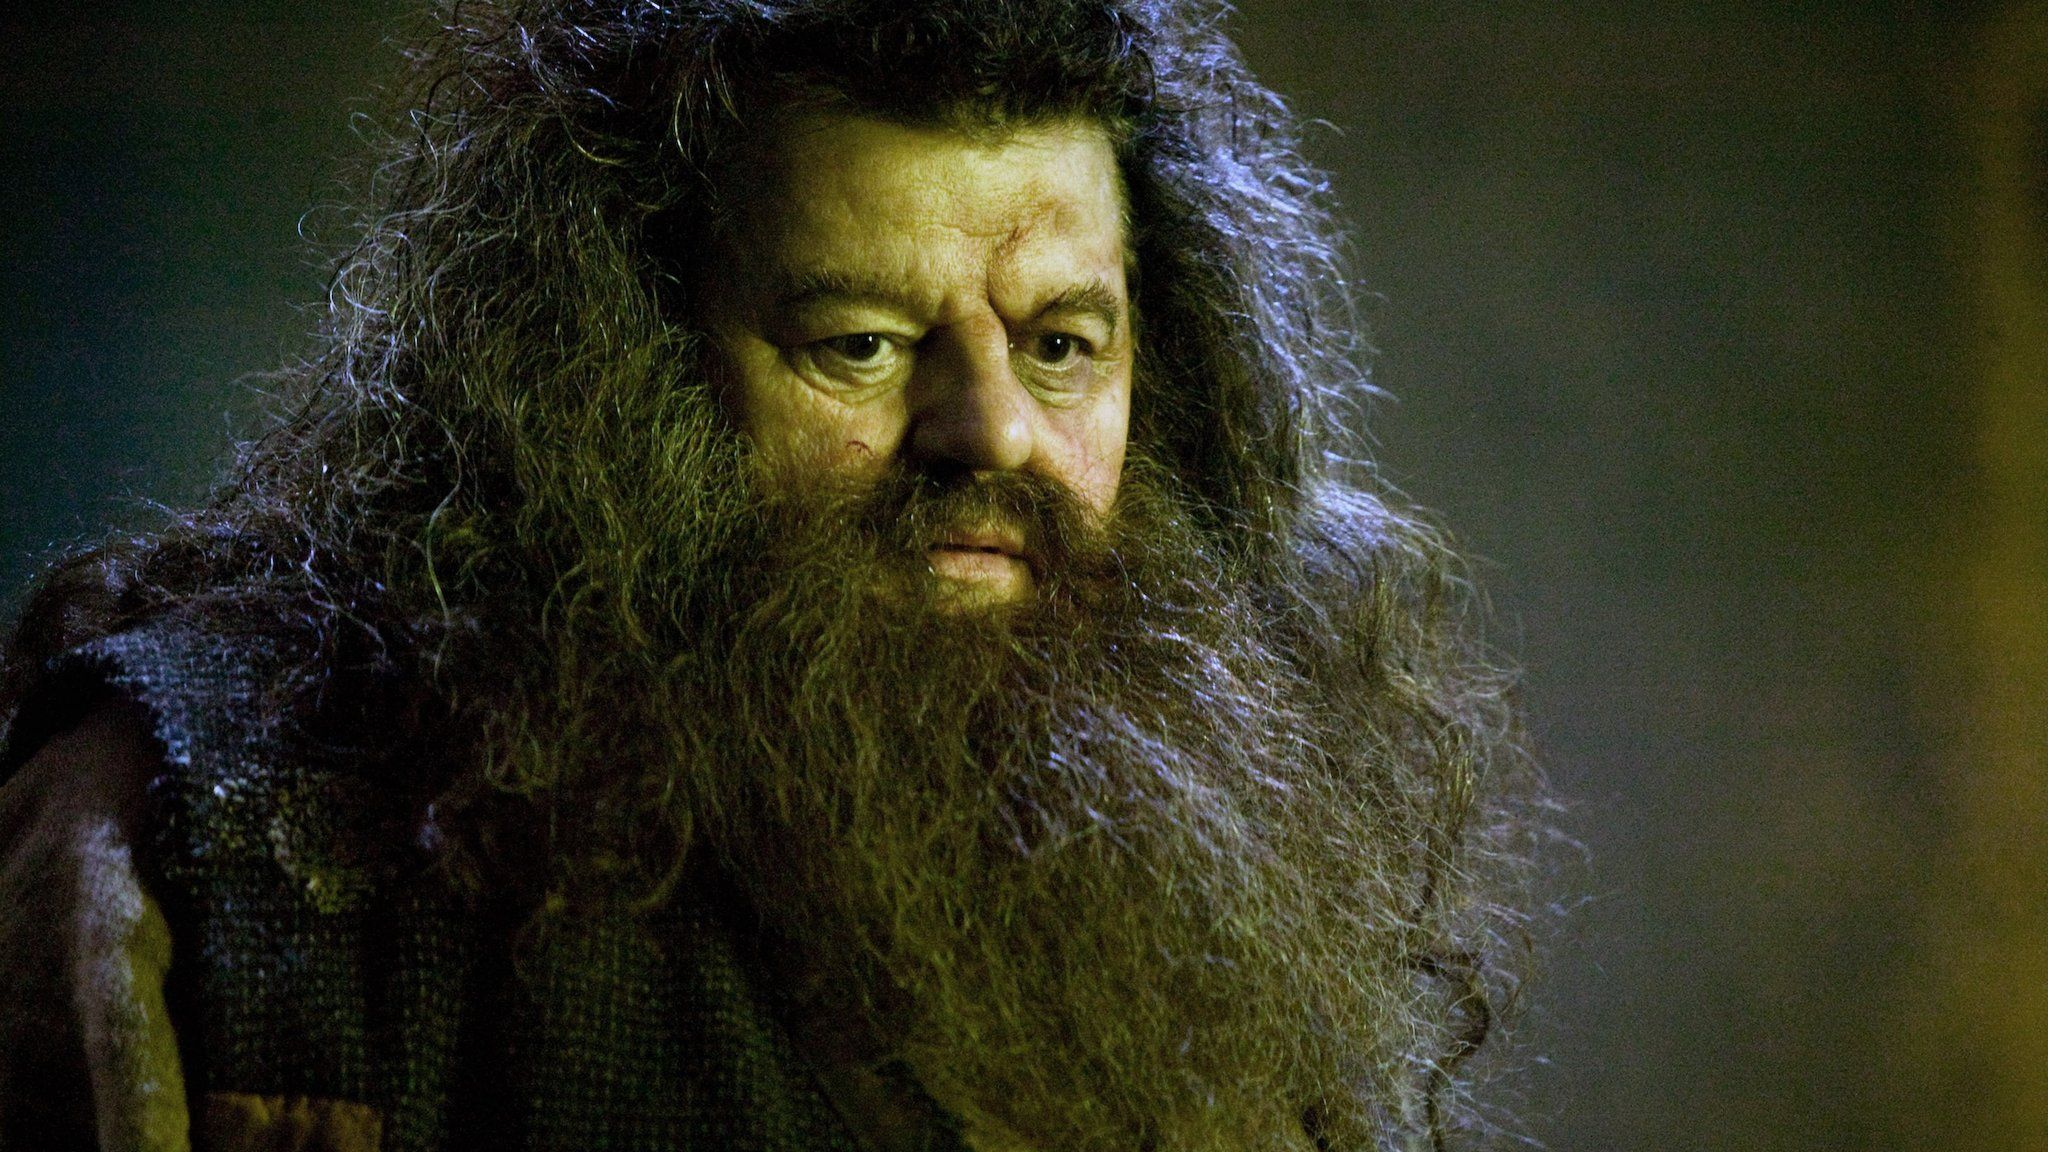 Robbie Coltrane Is The Only Harry Potter Cast Member Defending JK Rowling